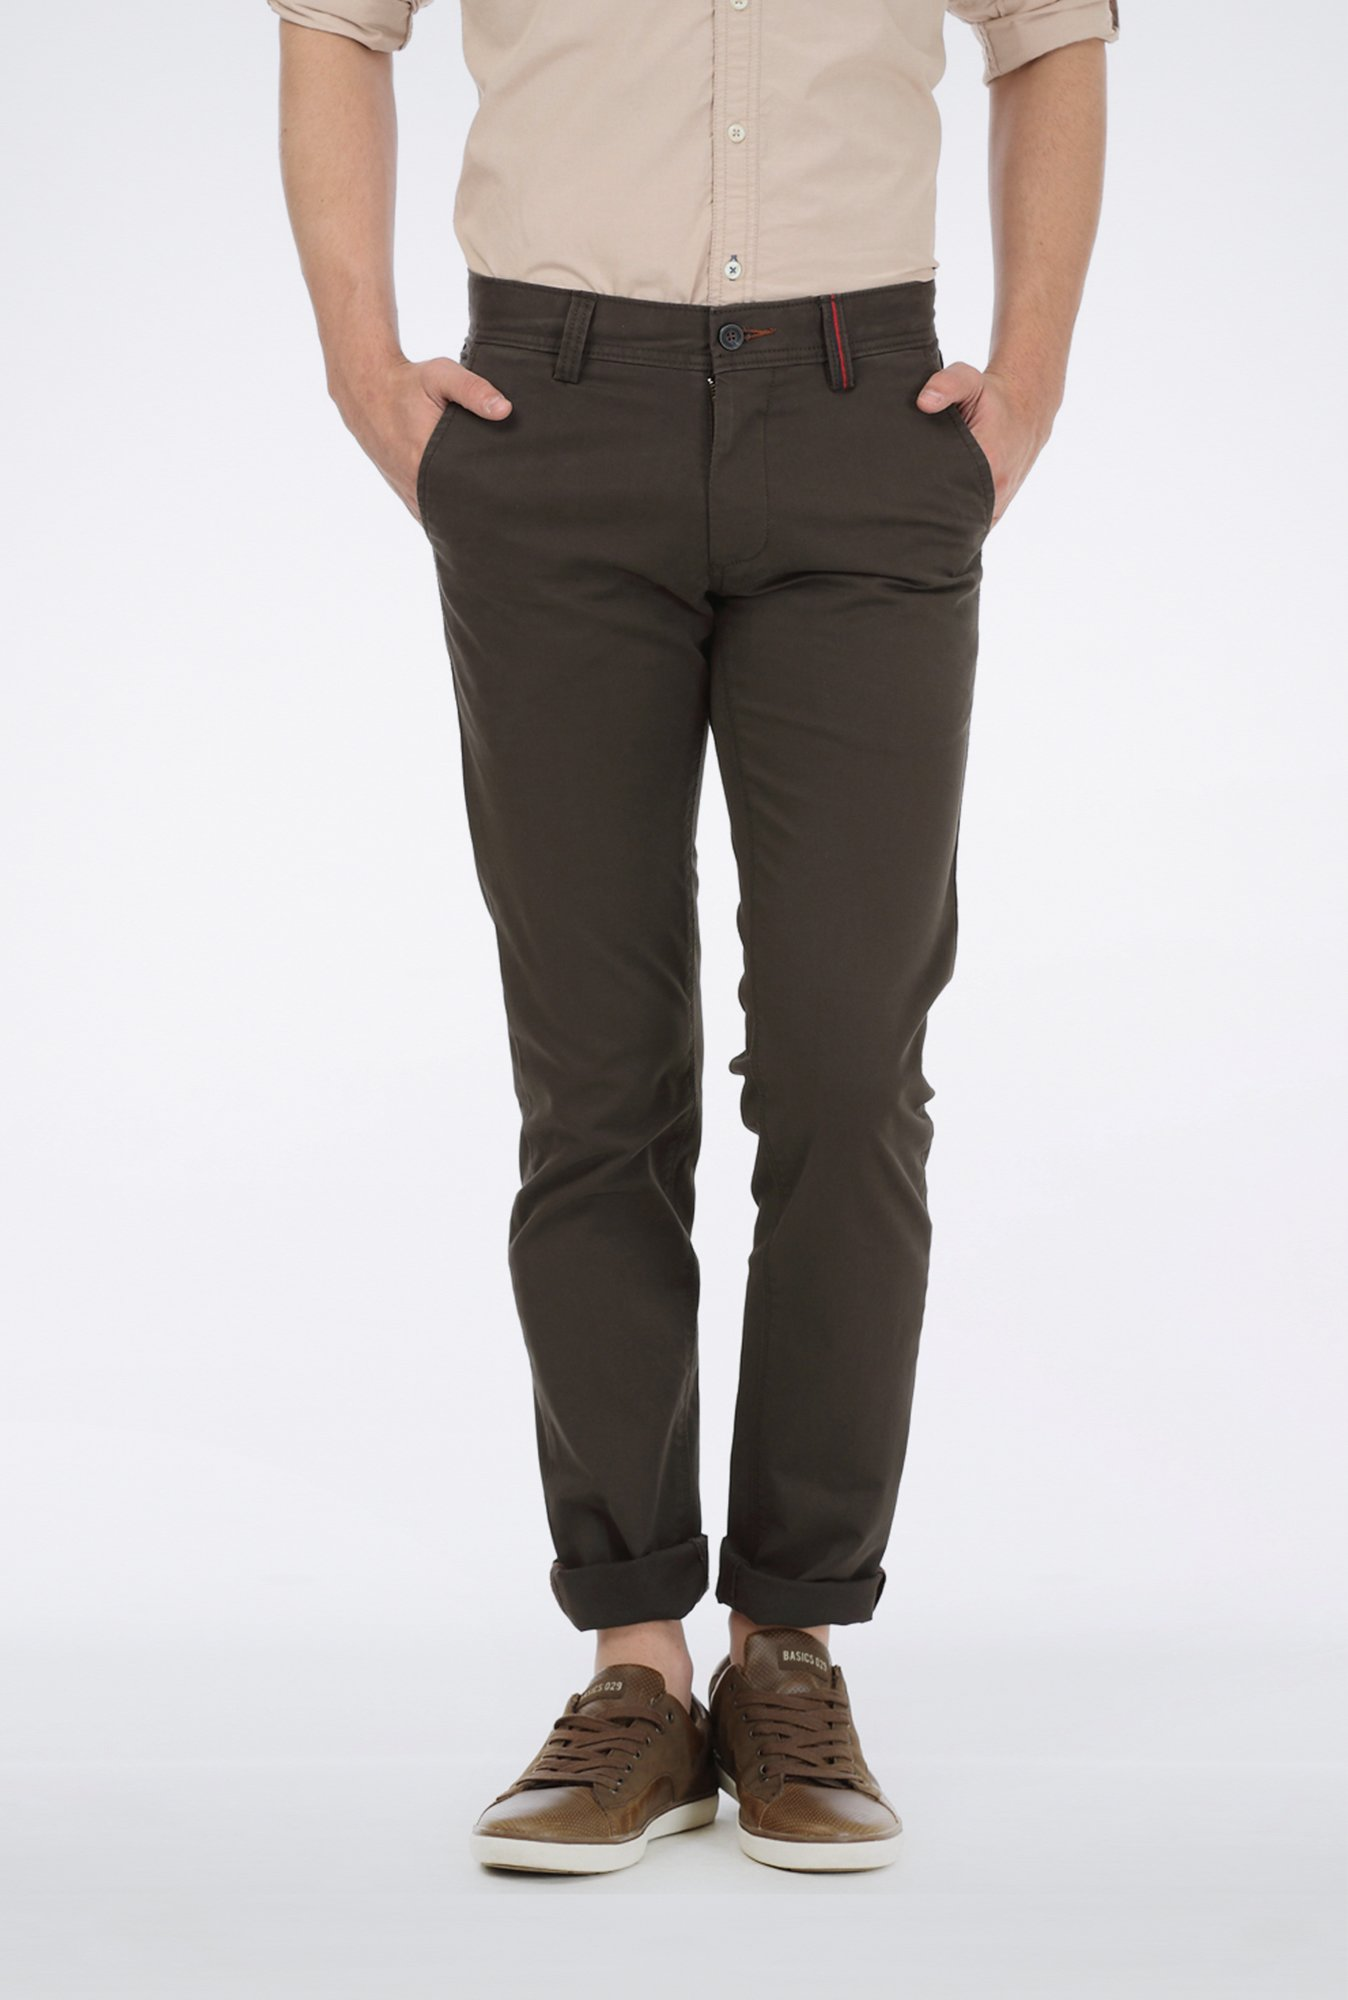 Basics Dark Grey Casual Trouser